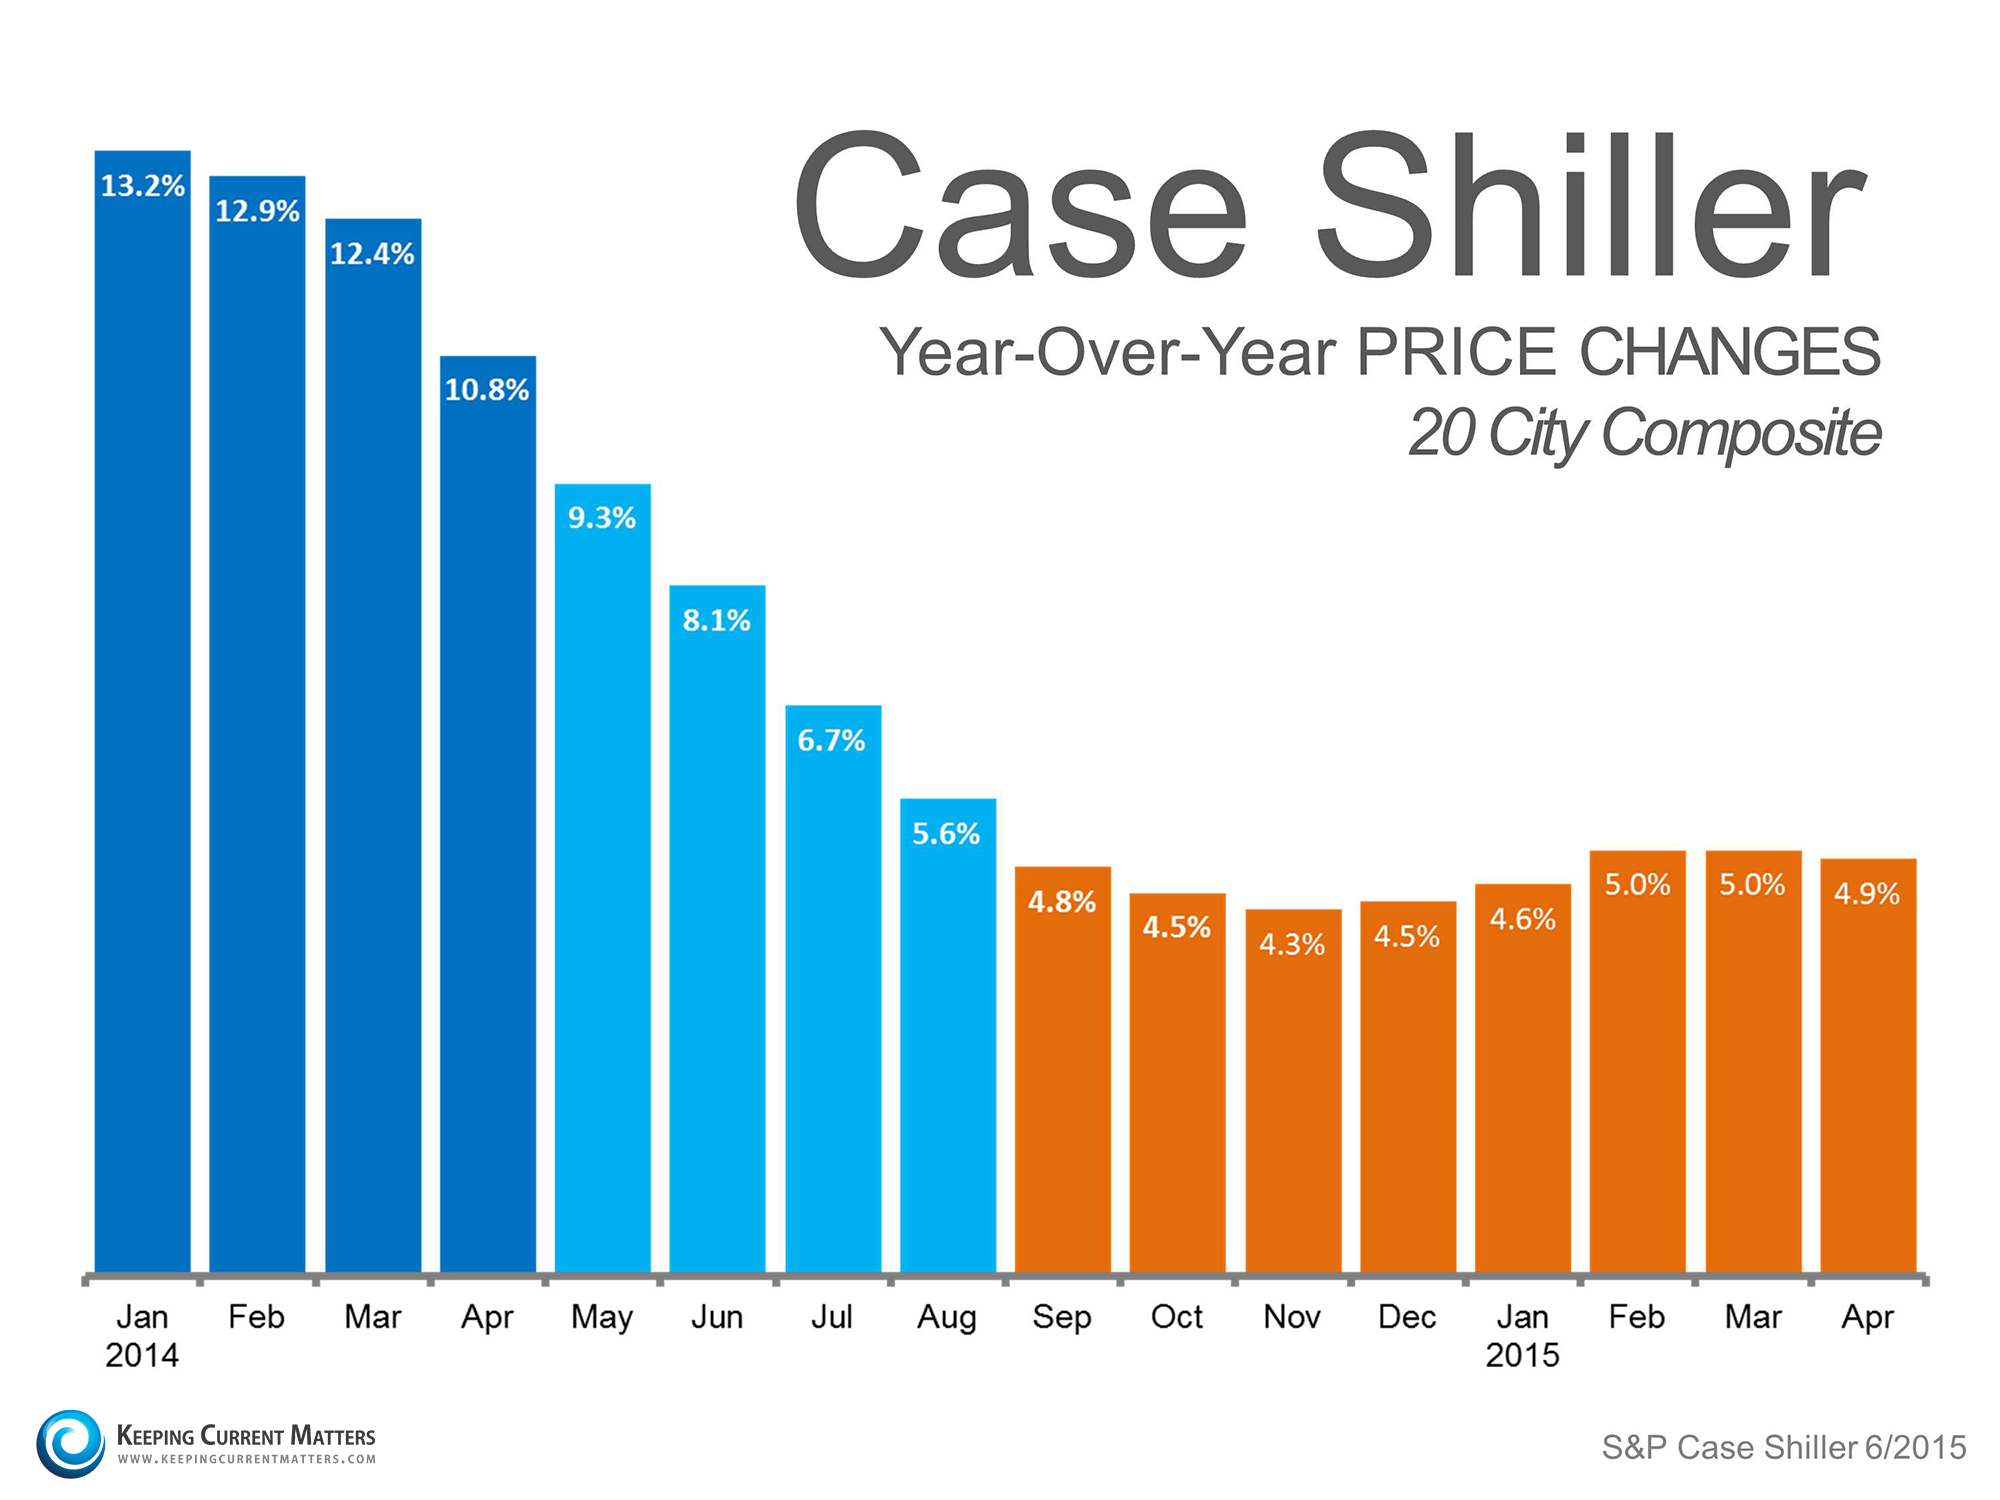 Case Shiller Price Changes | Keeping Current Matters